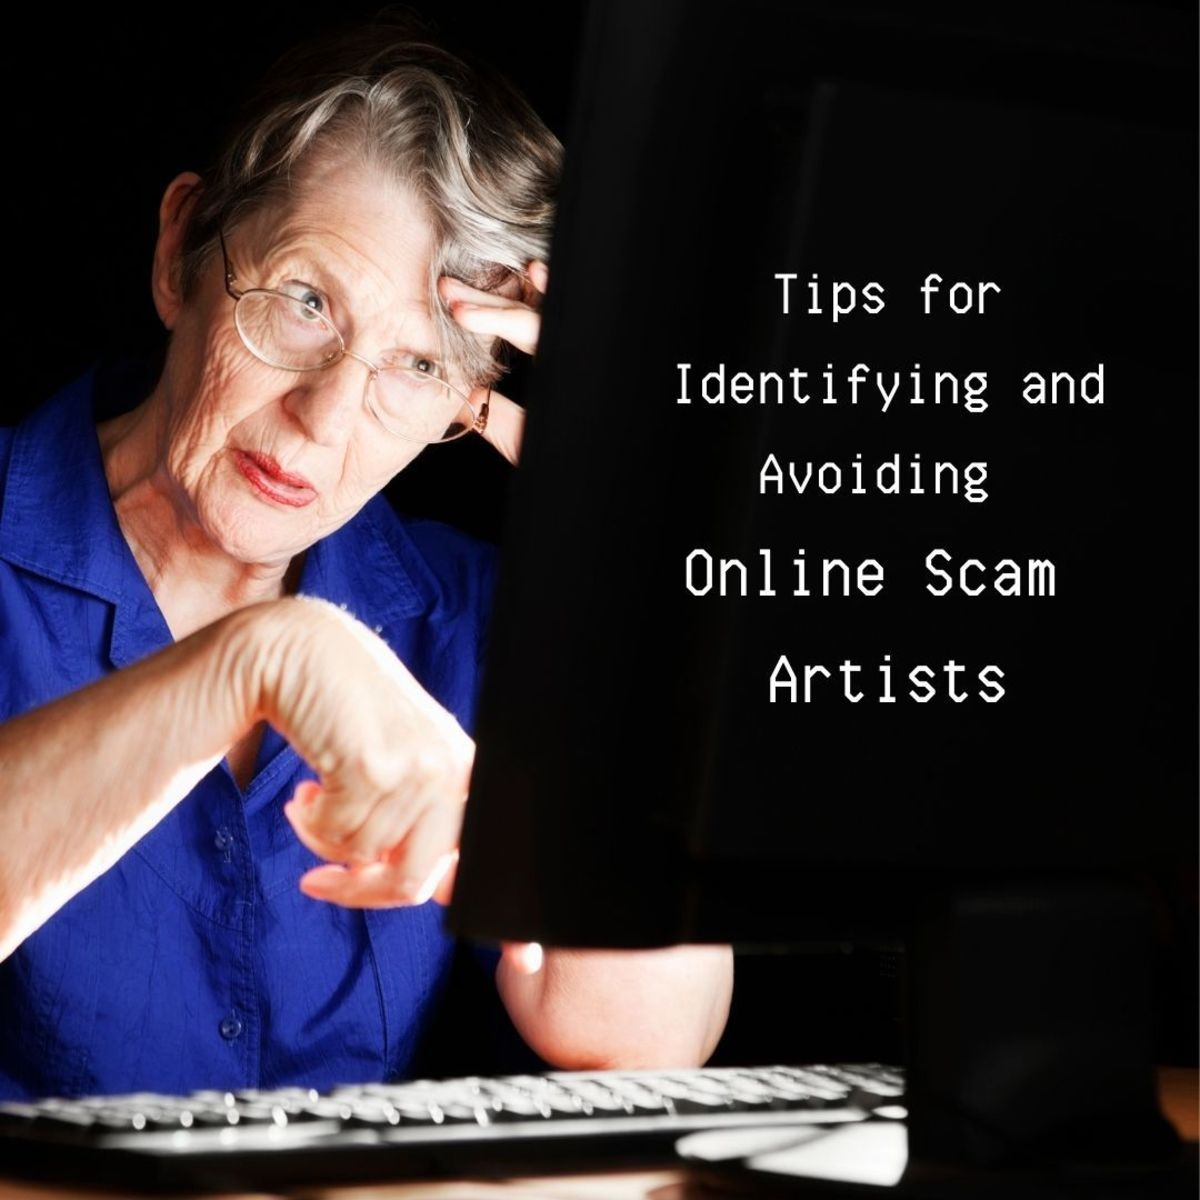 How to Identify and Avoid an Online Romance Scam Artist